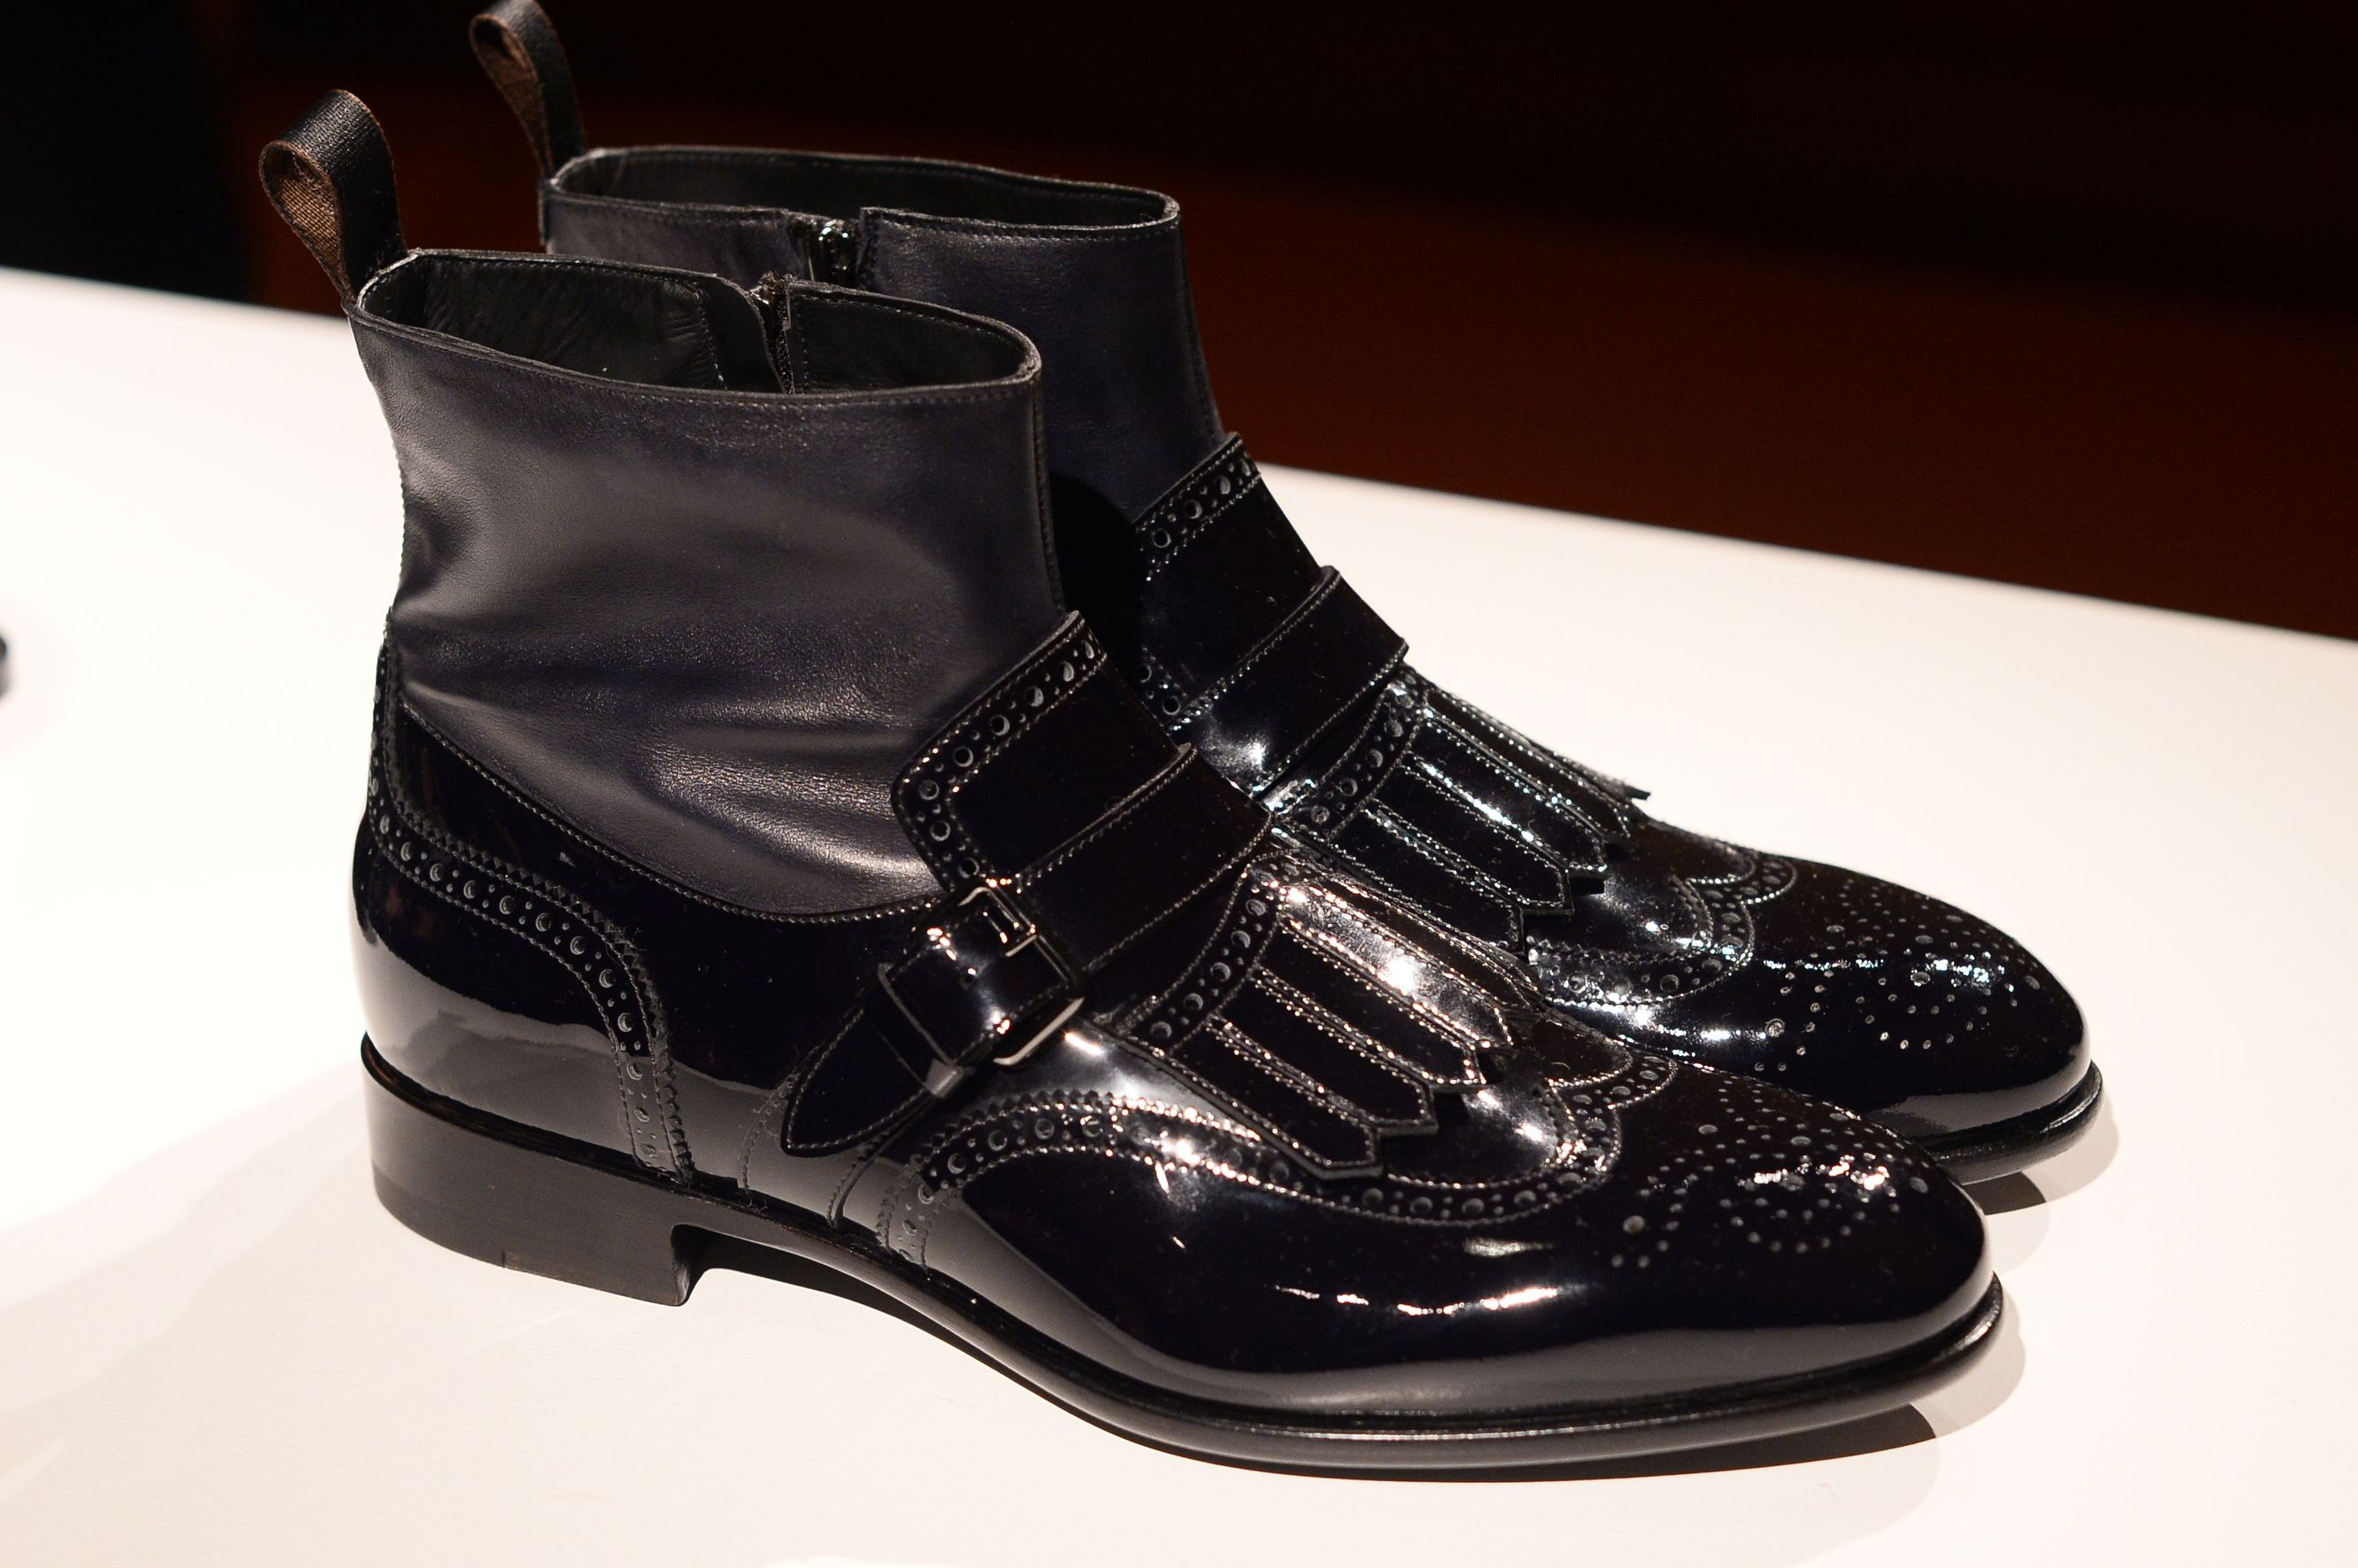 Santoni Men s Fall Winter 2017 at Milano Fashion Week  ed67c7b1ea1